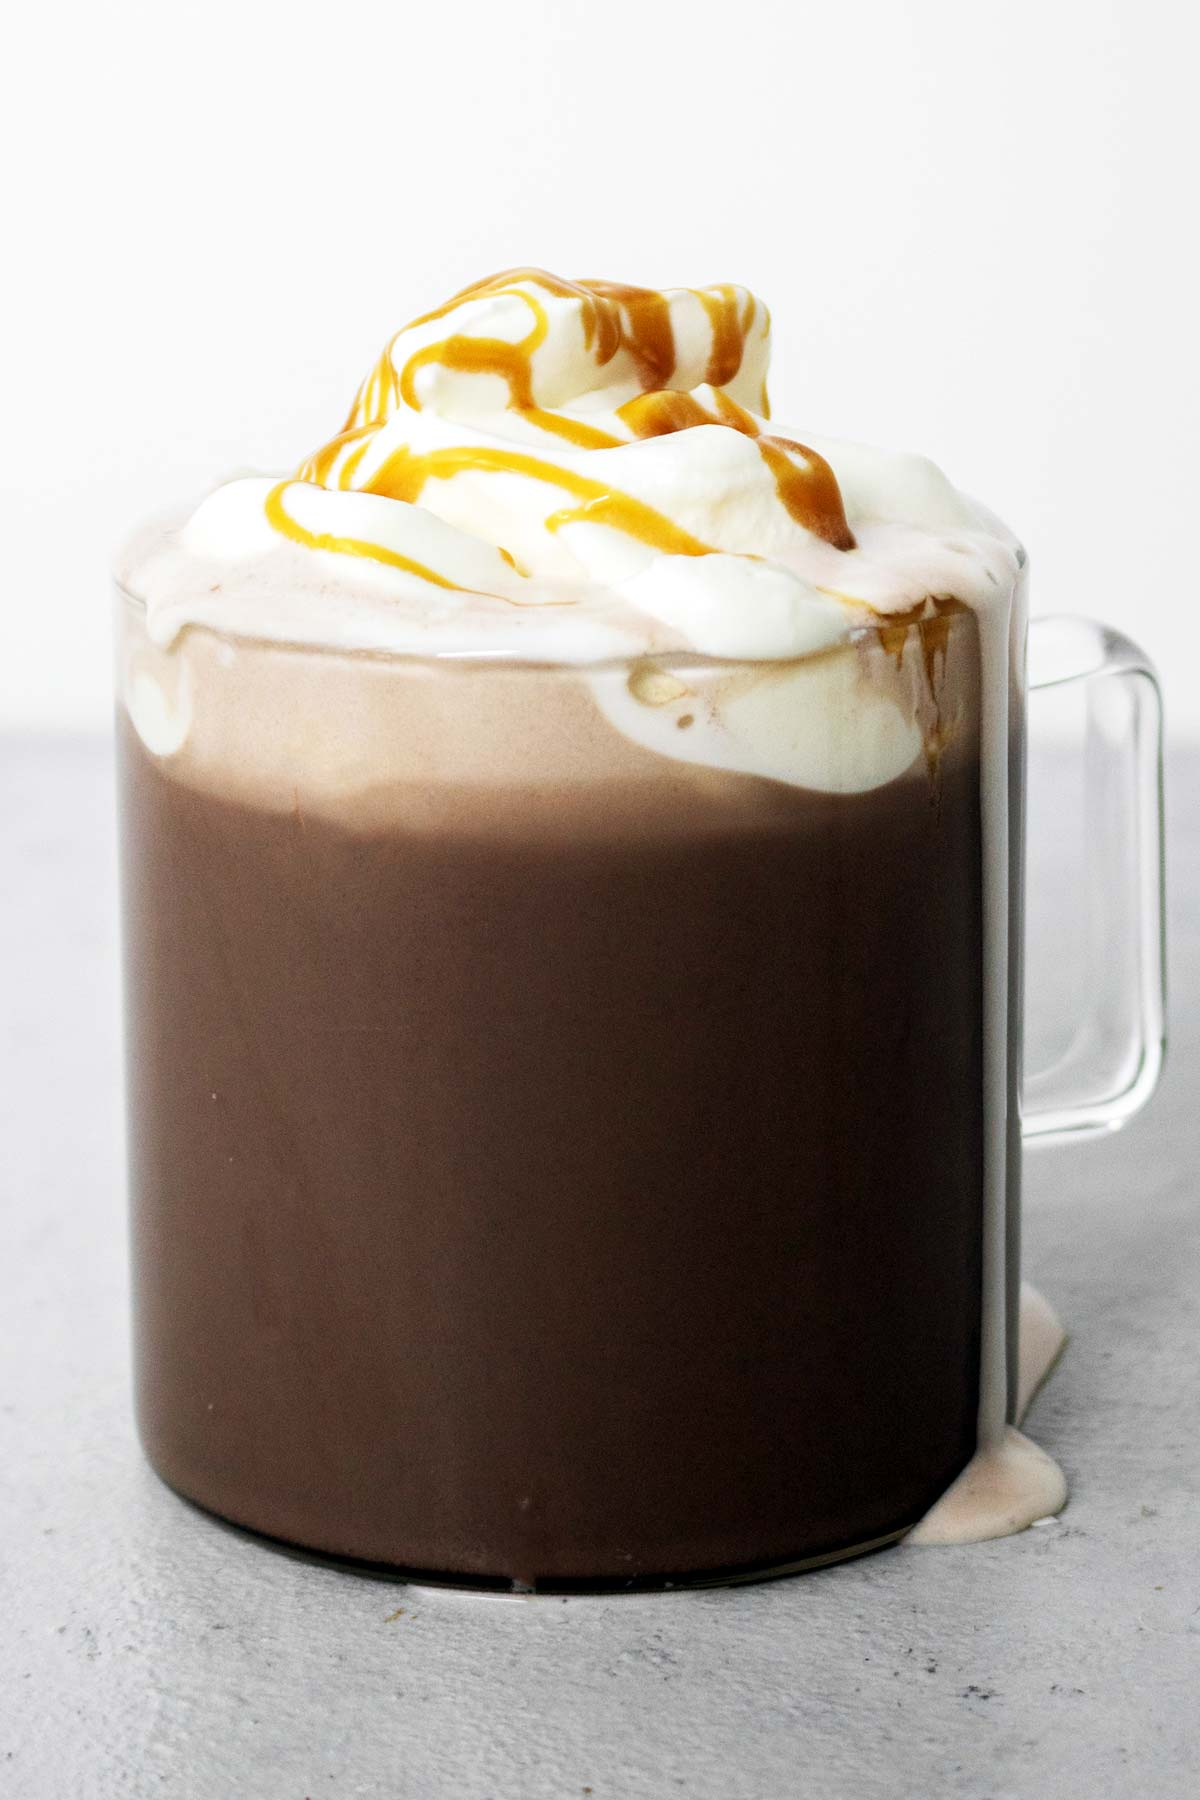 Salted caramel hot chocolate in a mug with whipped cream.